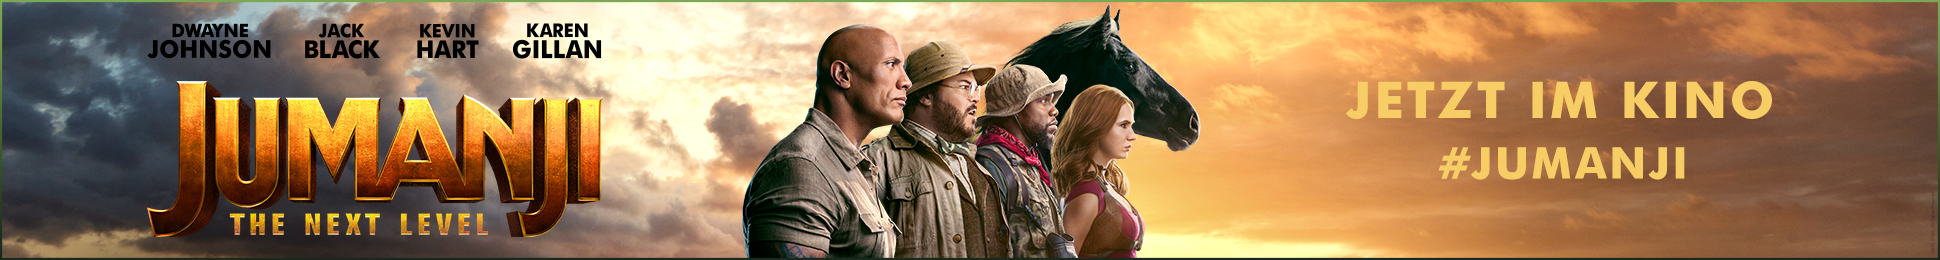 Filmtipp: Jumanji: The Next Level